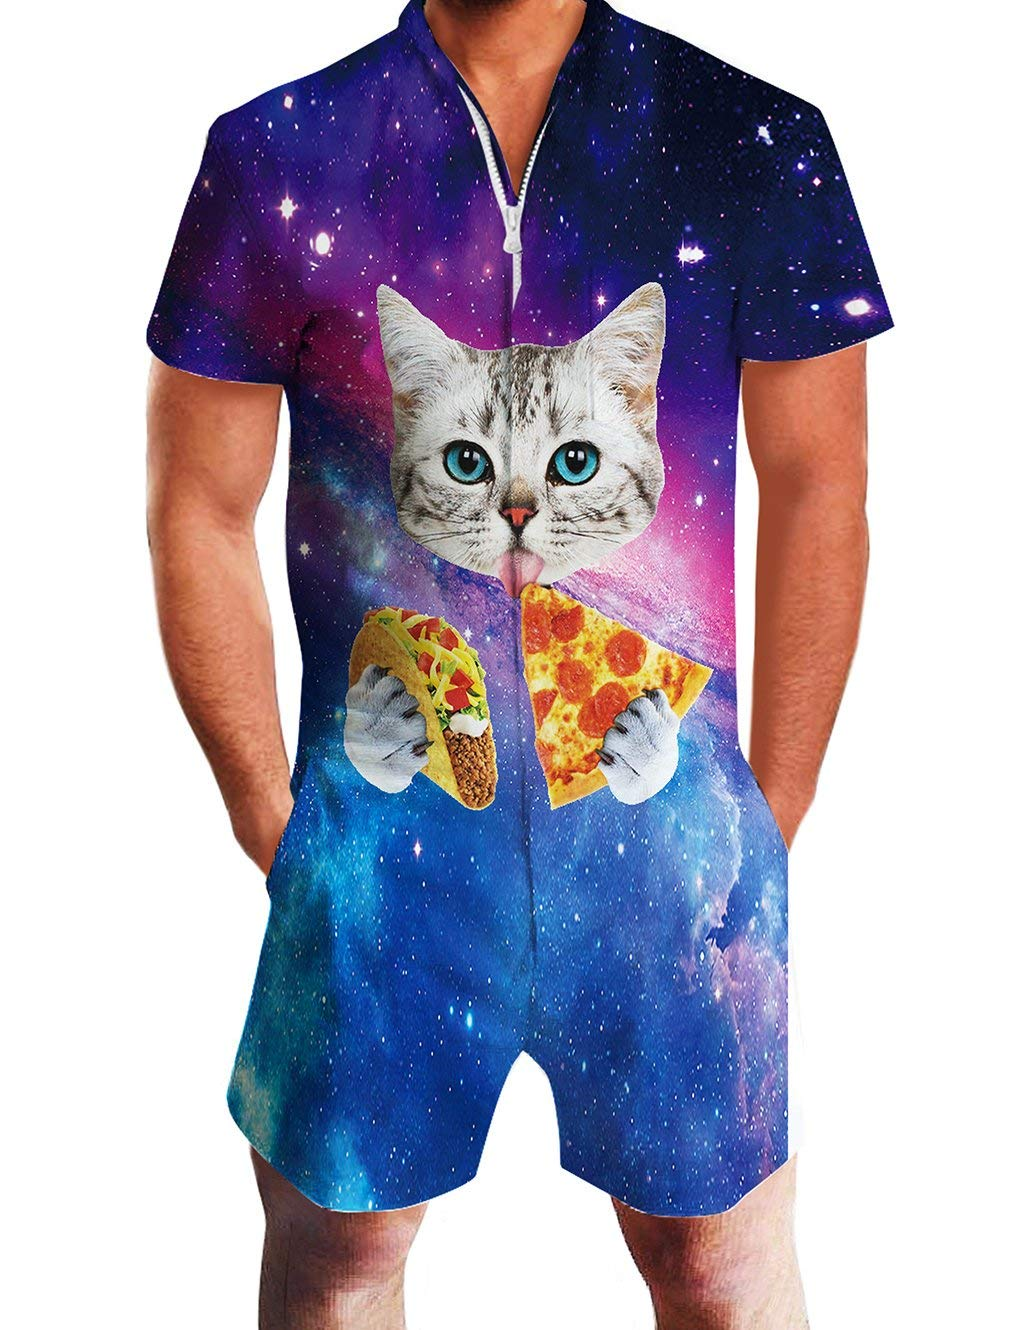 Mens Romper Jumpsuit 3D Novelty Pizza Cat Printed Romper Durable Short Sleeve Zip Up Fun Outfit 90s Personalized Shorts Cargo Pants Teens One Piece Overall with Pocket for Summer Party Work Out by Jubestar